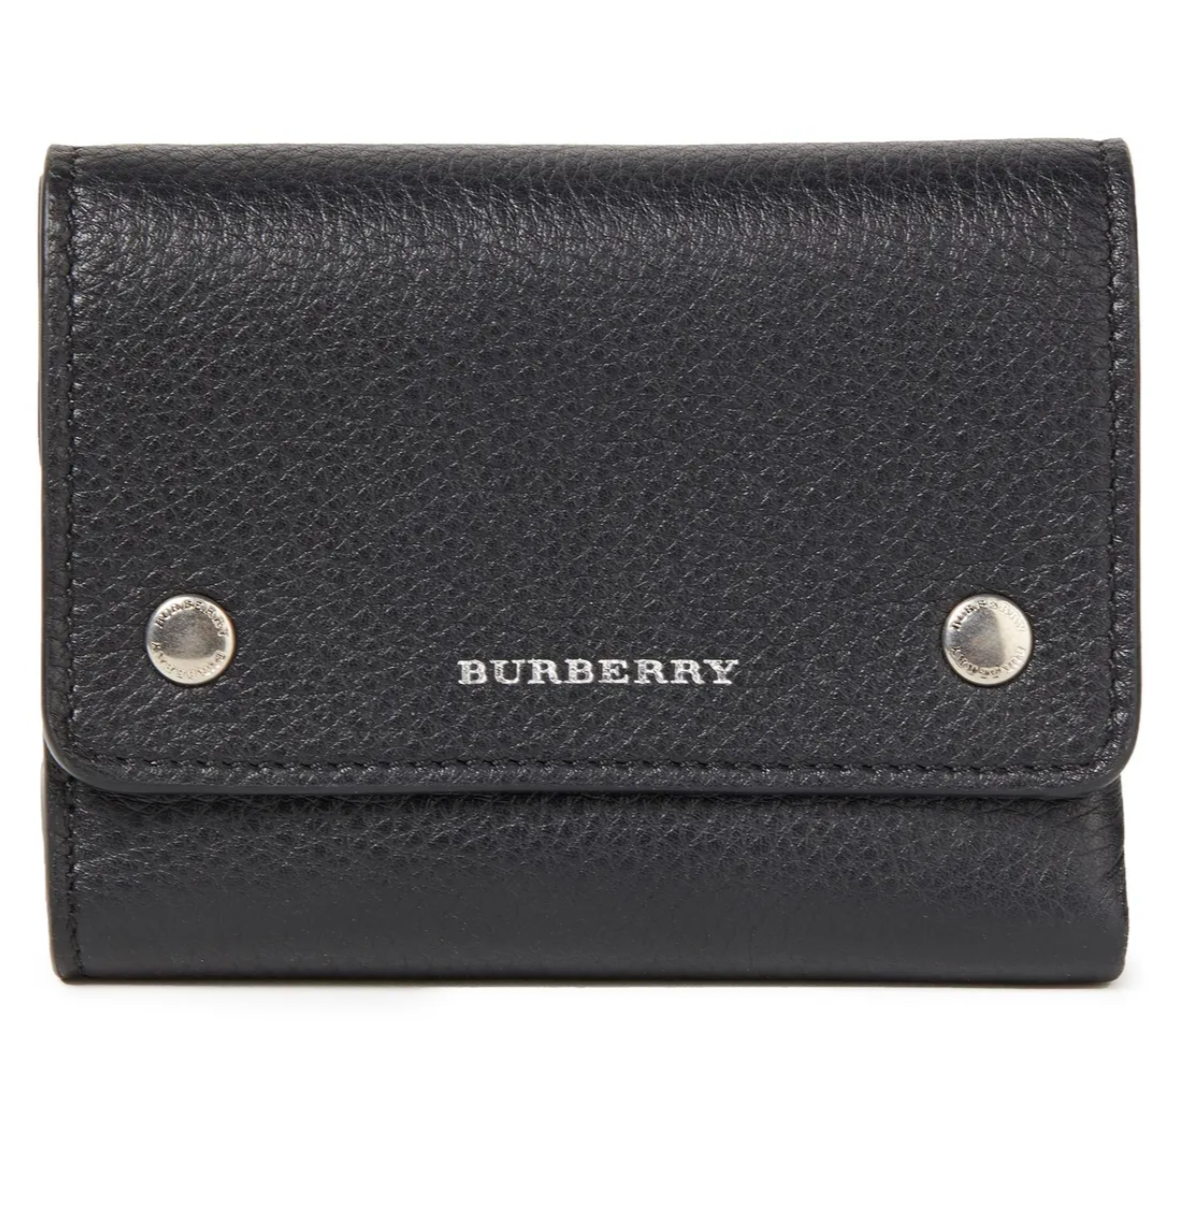 Burbbery Pebbled-leather Wallet @The OUTNET is only $248.20